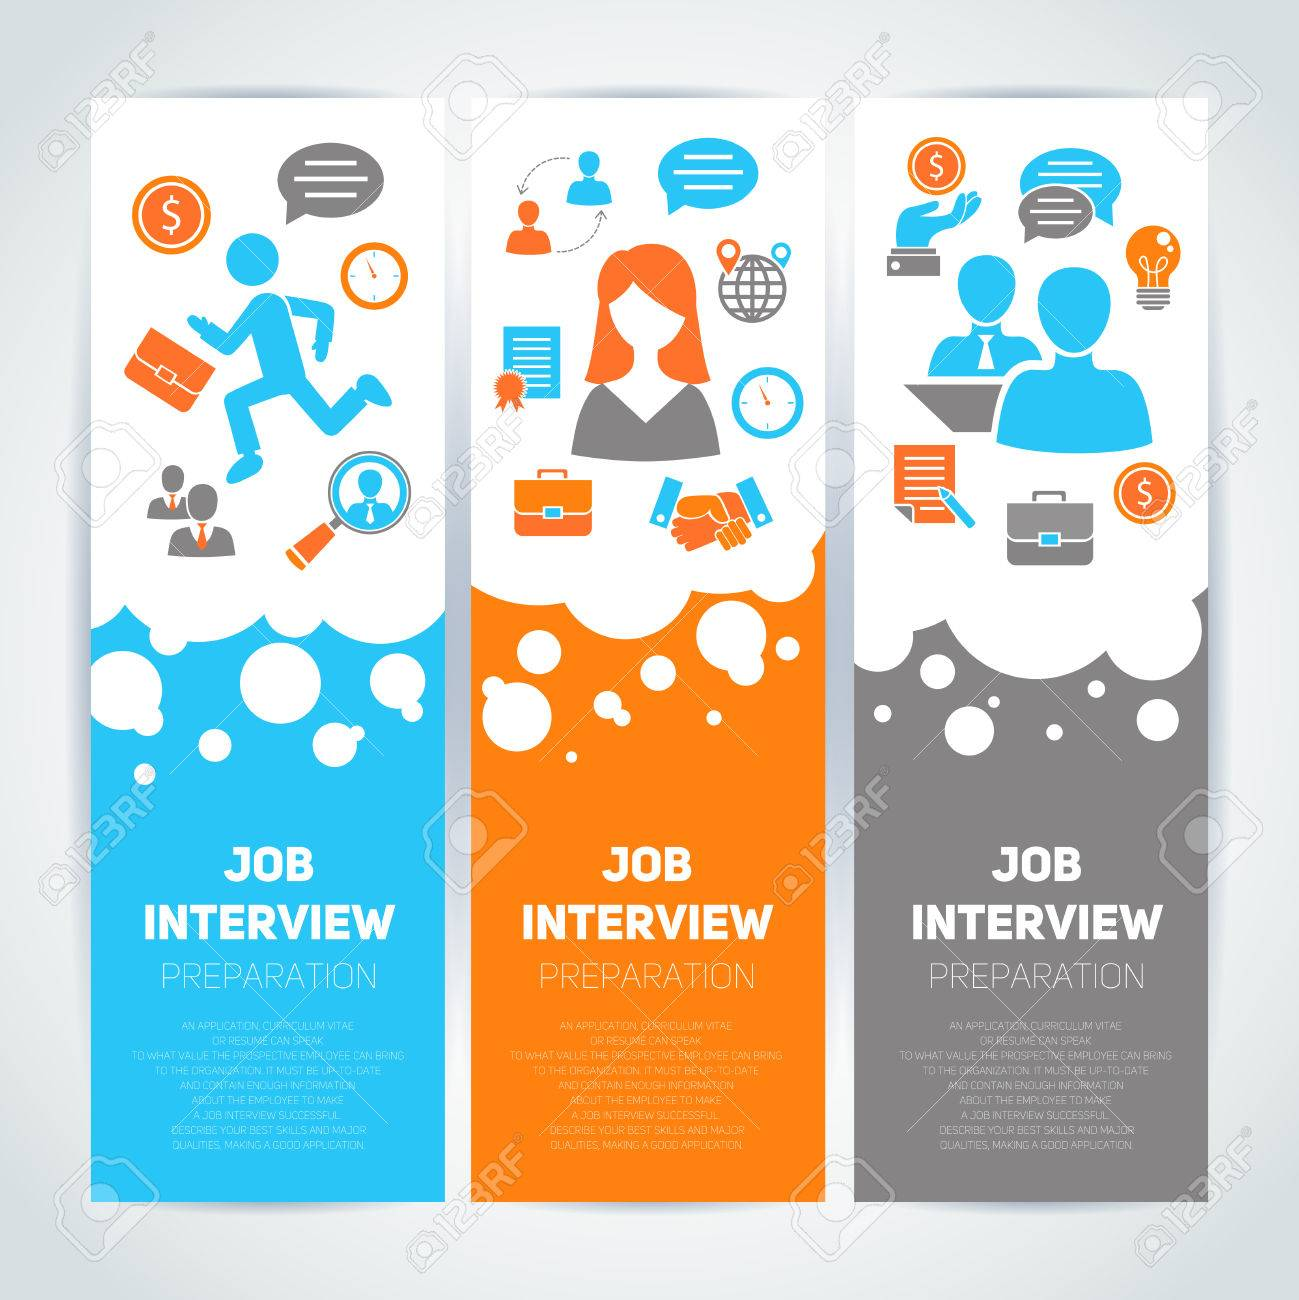 job interview preparation flat banner vertical set job interview preparation flat banner vertical set recruitment meeting cv search isolated vector illustration stock